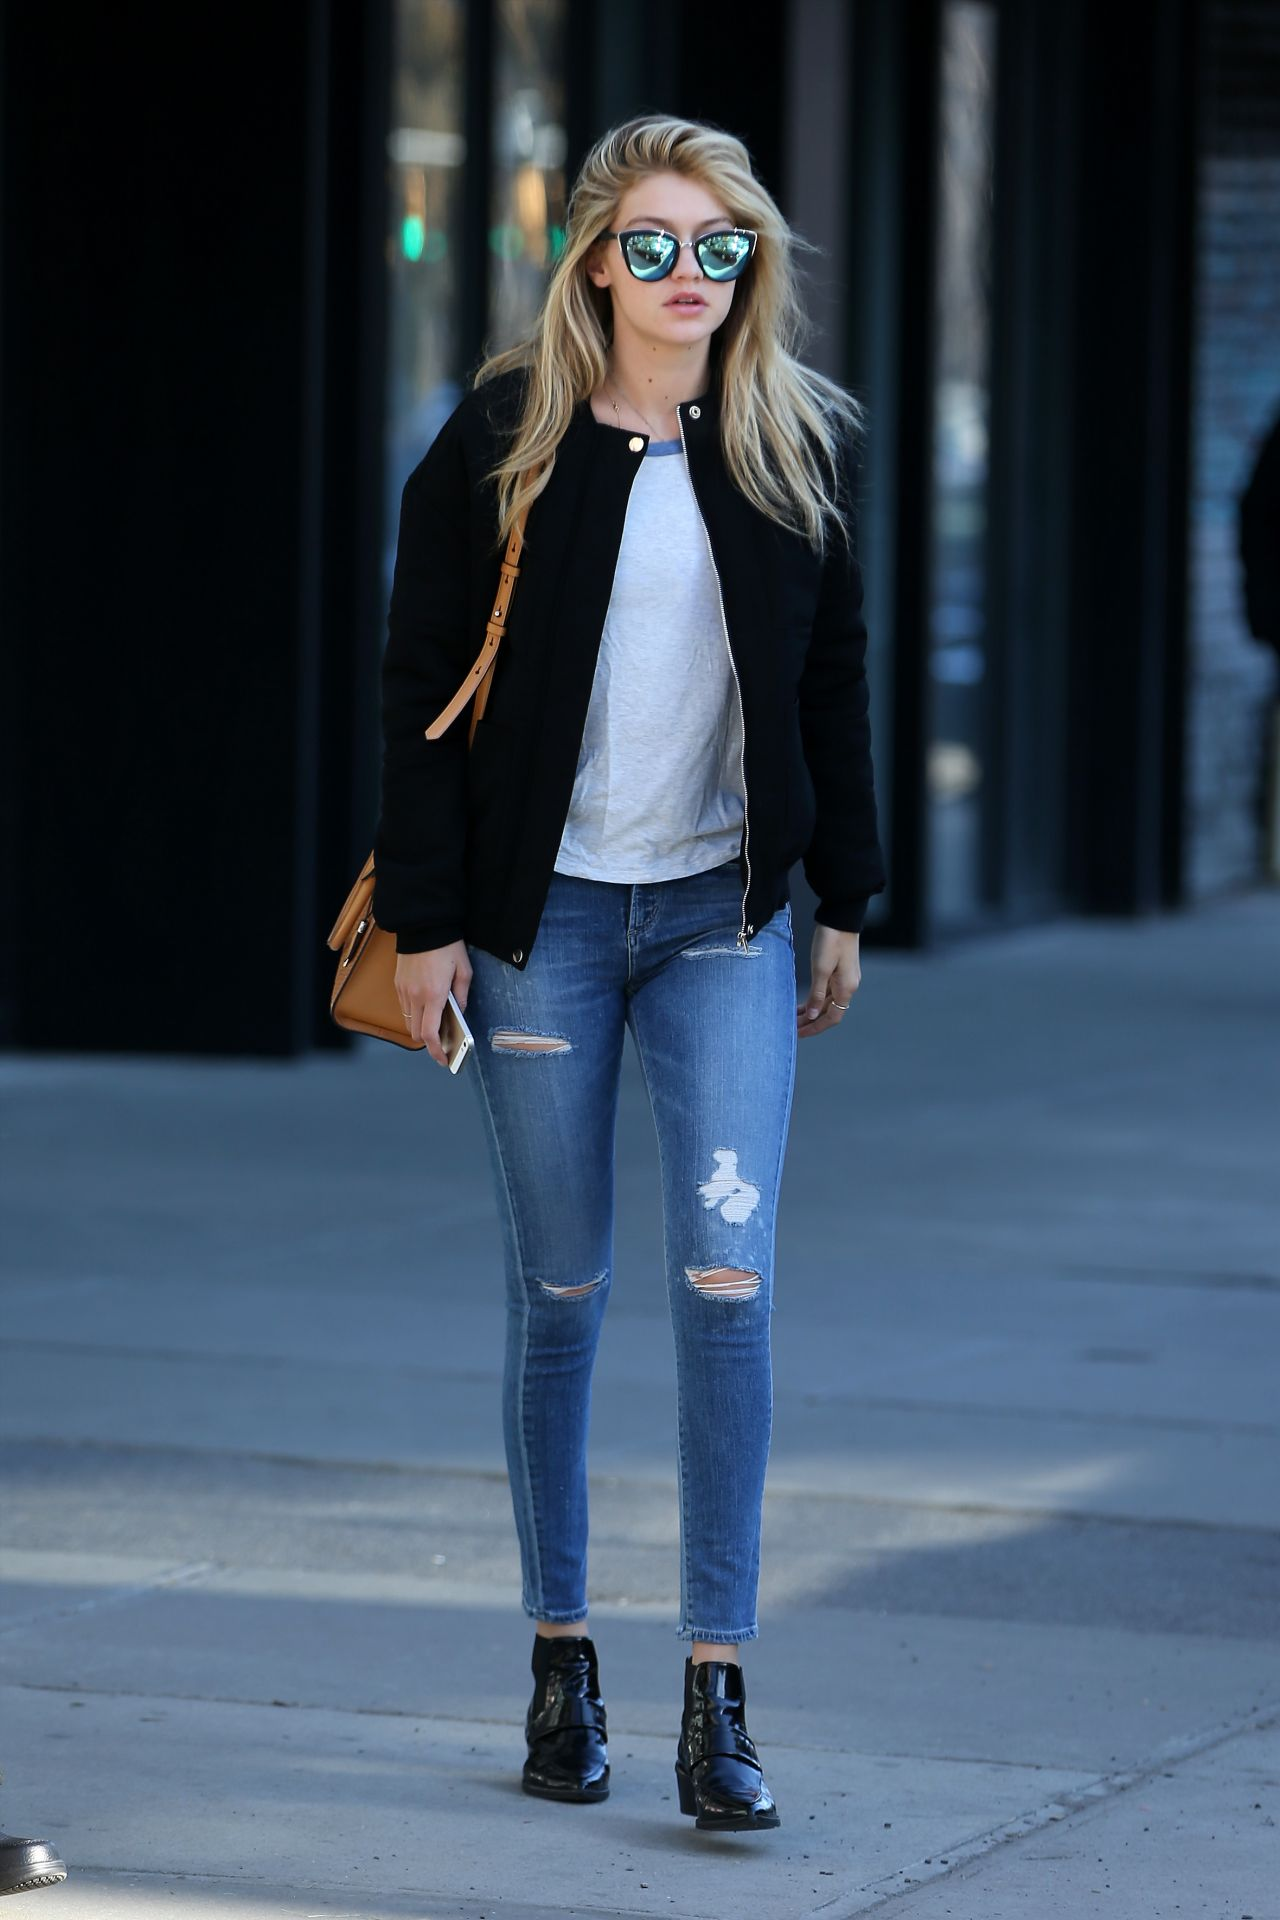 chica con jeans rotos